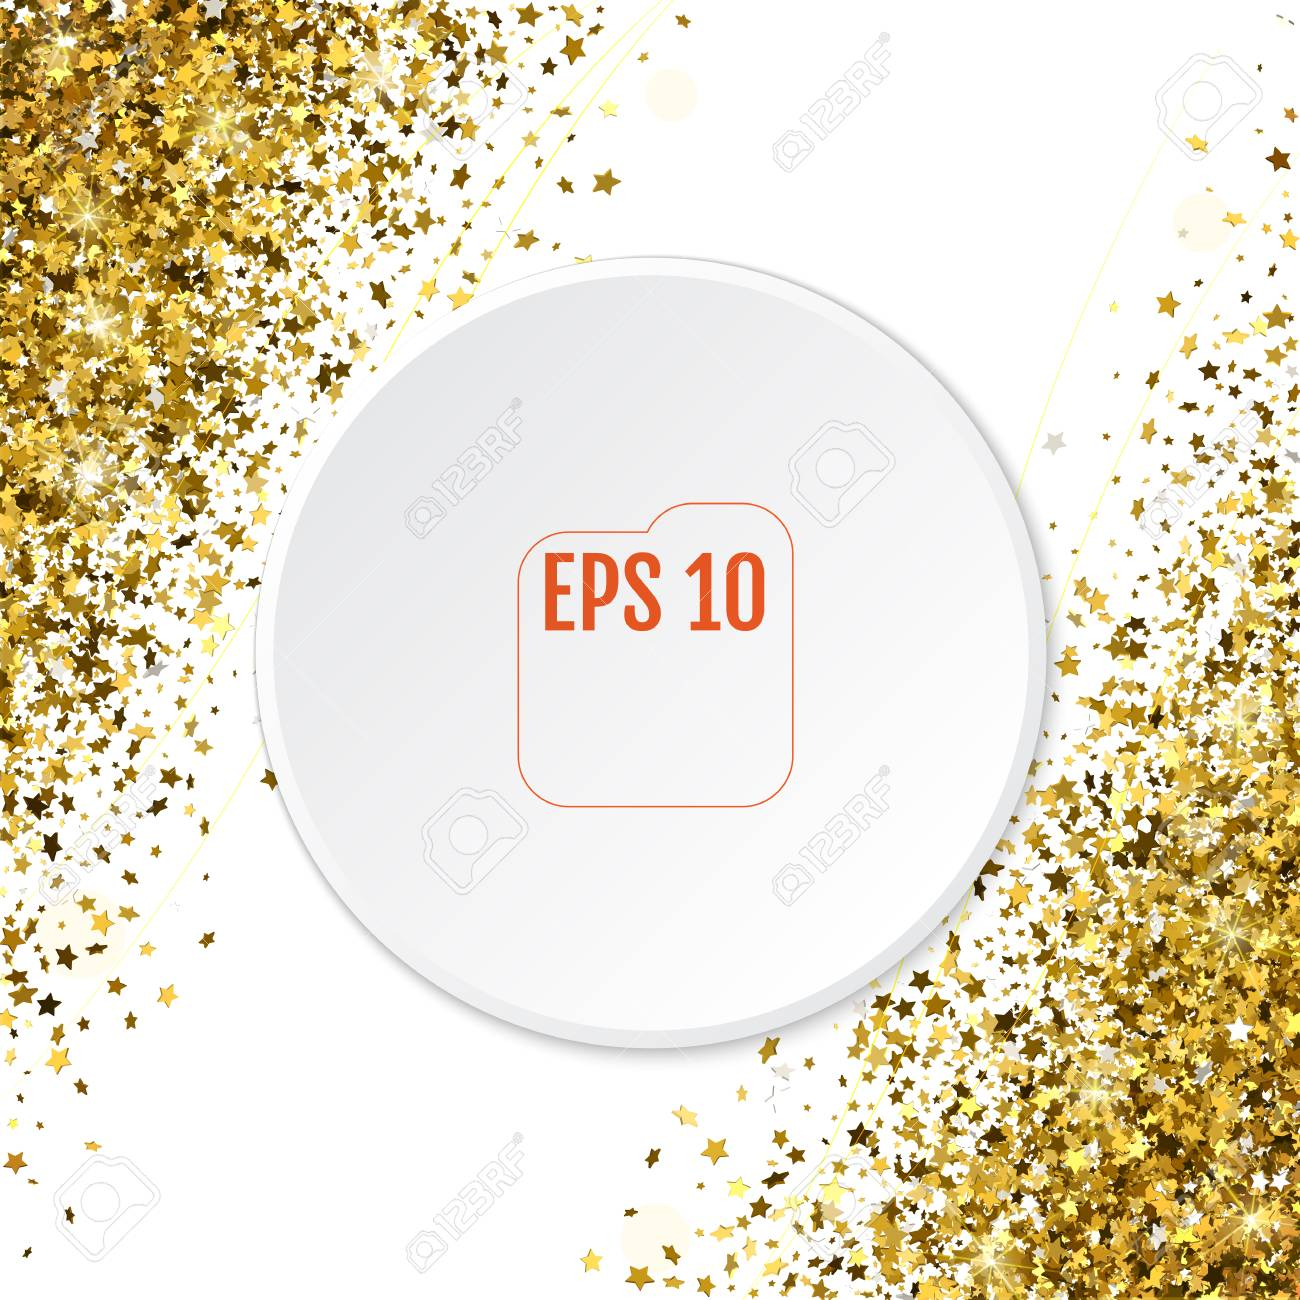 abstract pattern of random falling 3d gold stars on white background glitter template for banner